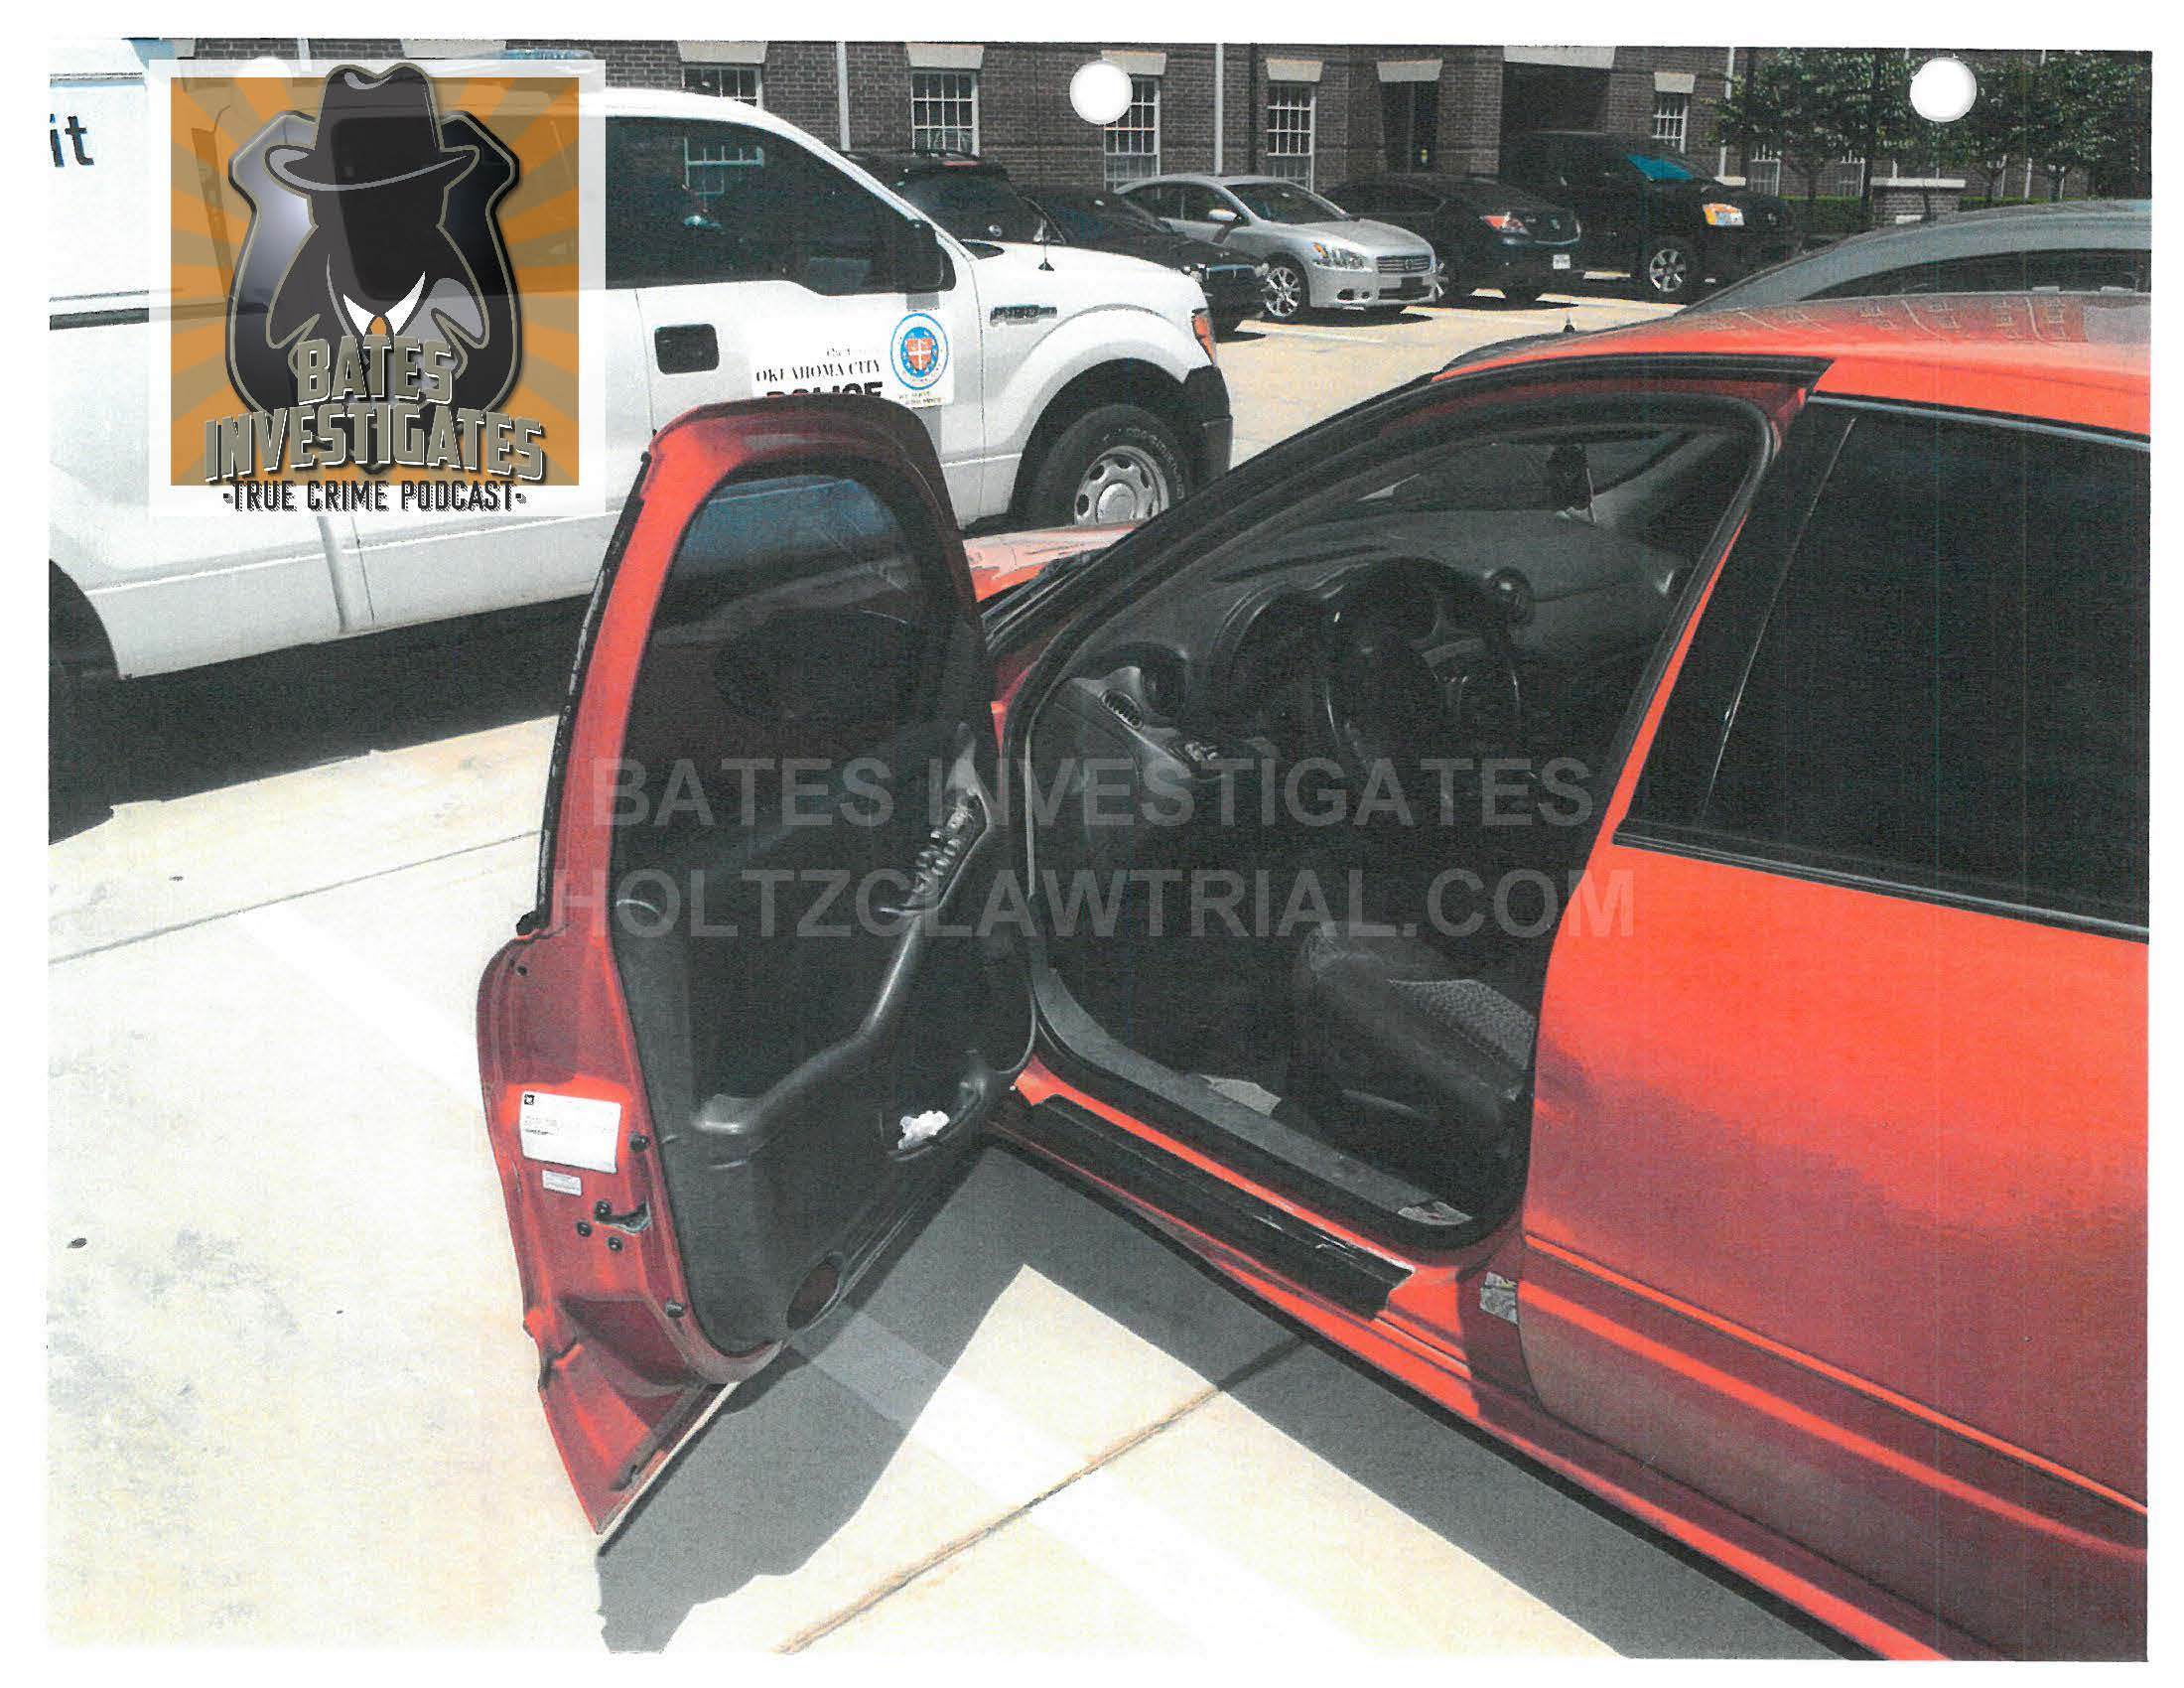 Holtzclaw Podcast Ep02 - Ligons Car - Watermarked_Page_06.jpg